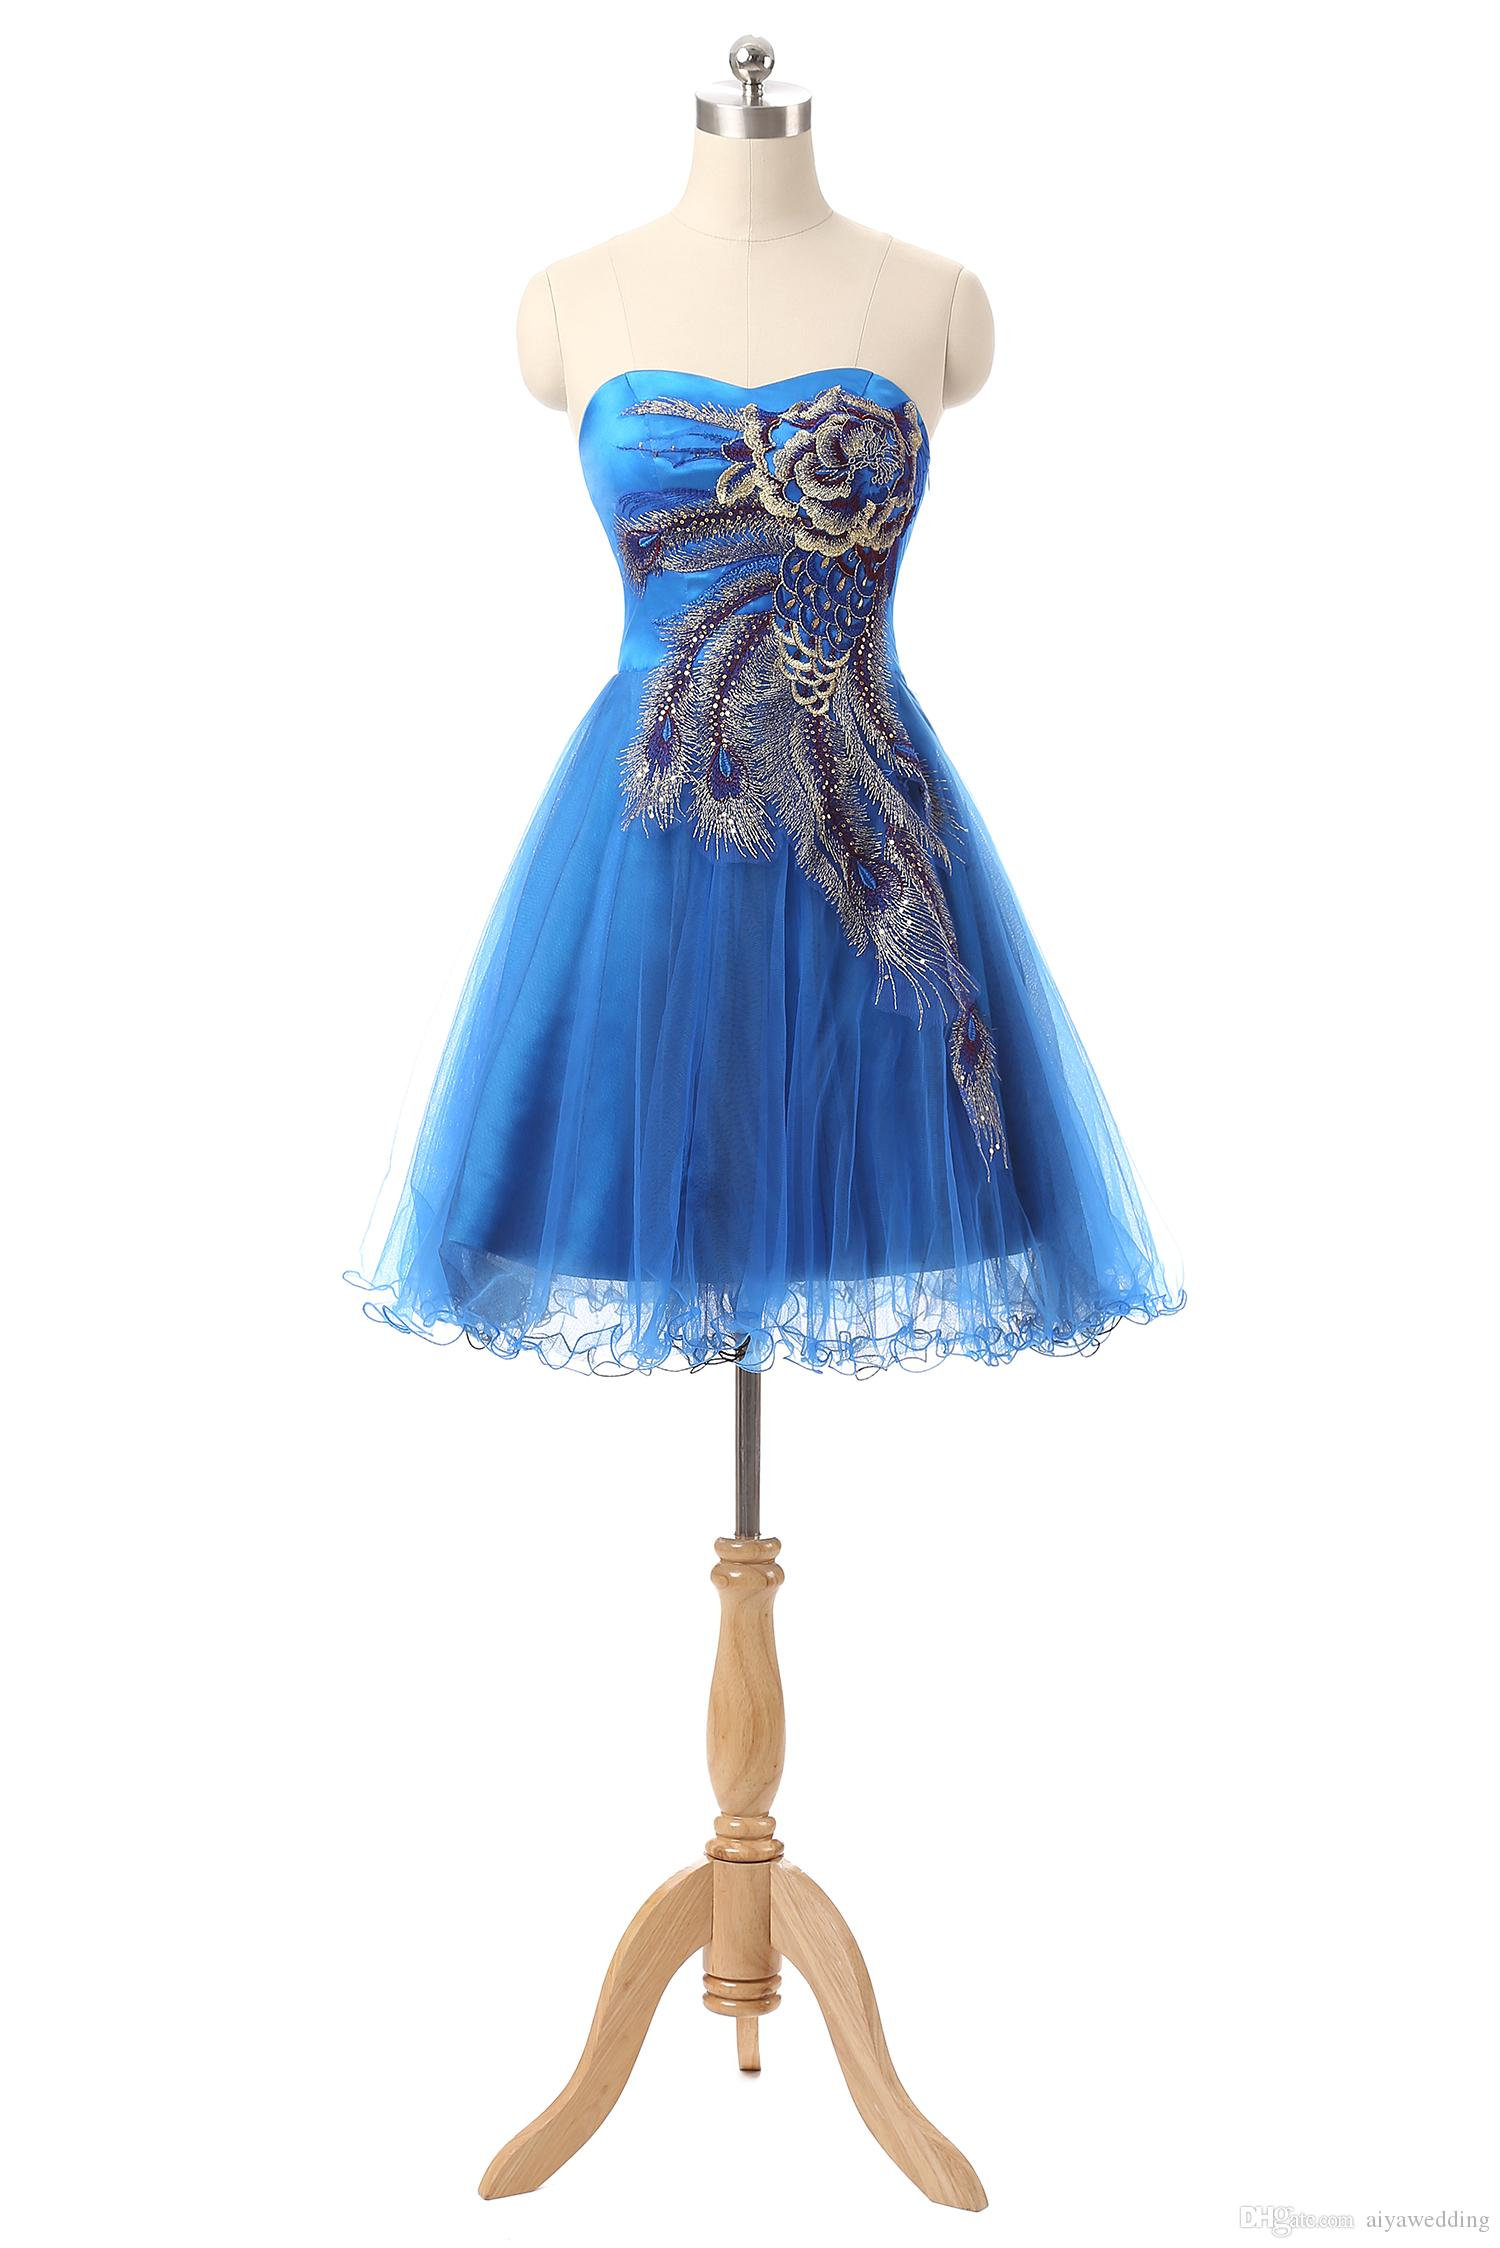 2019 Homecoming Dresses Sweetheart Embroidery Sequin A Line Formal Party Dresses Royal Blue Lace Up Dresses